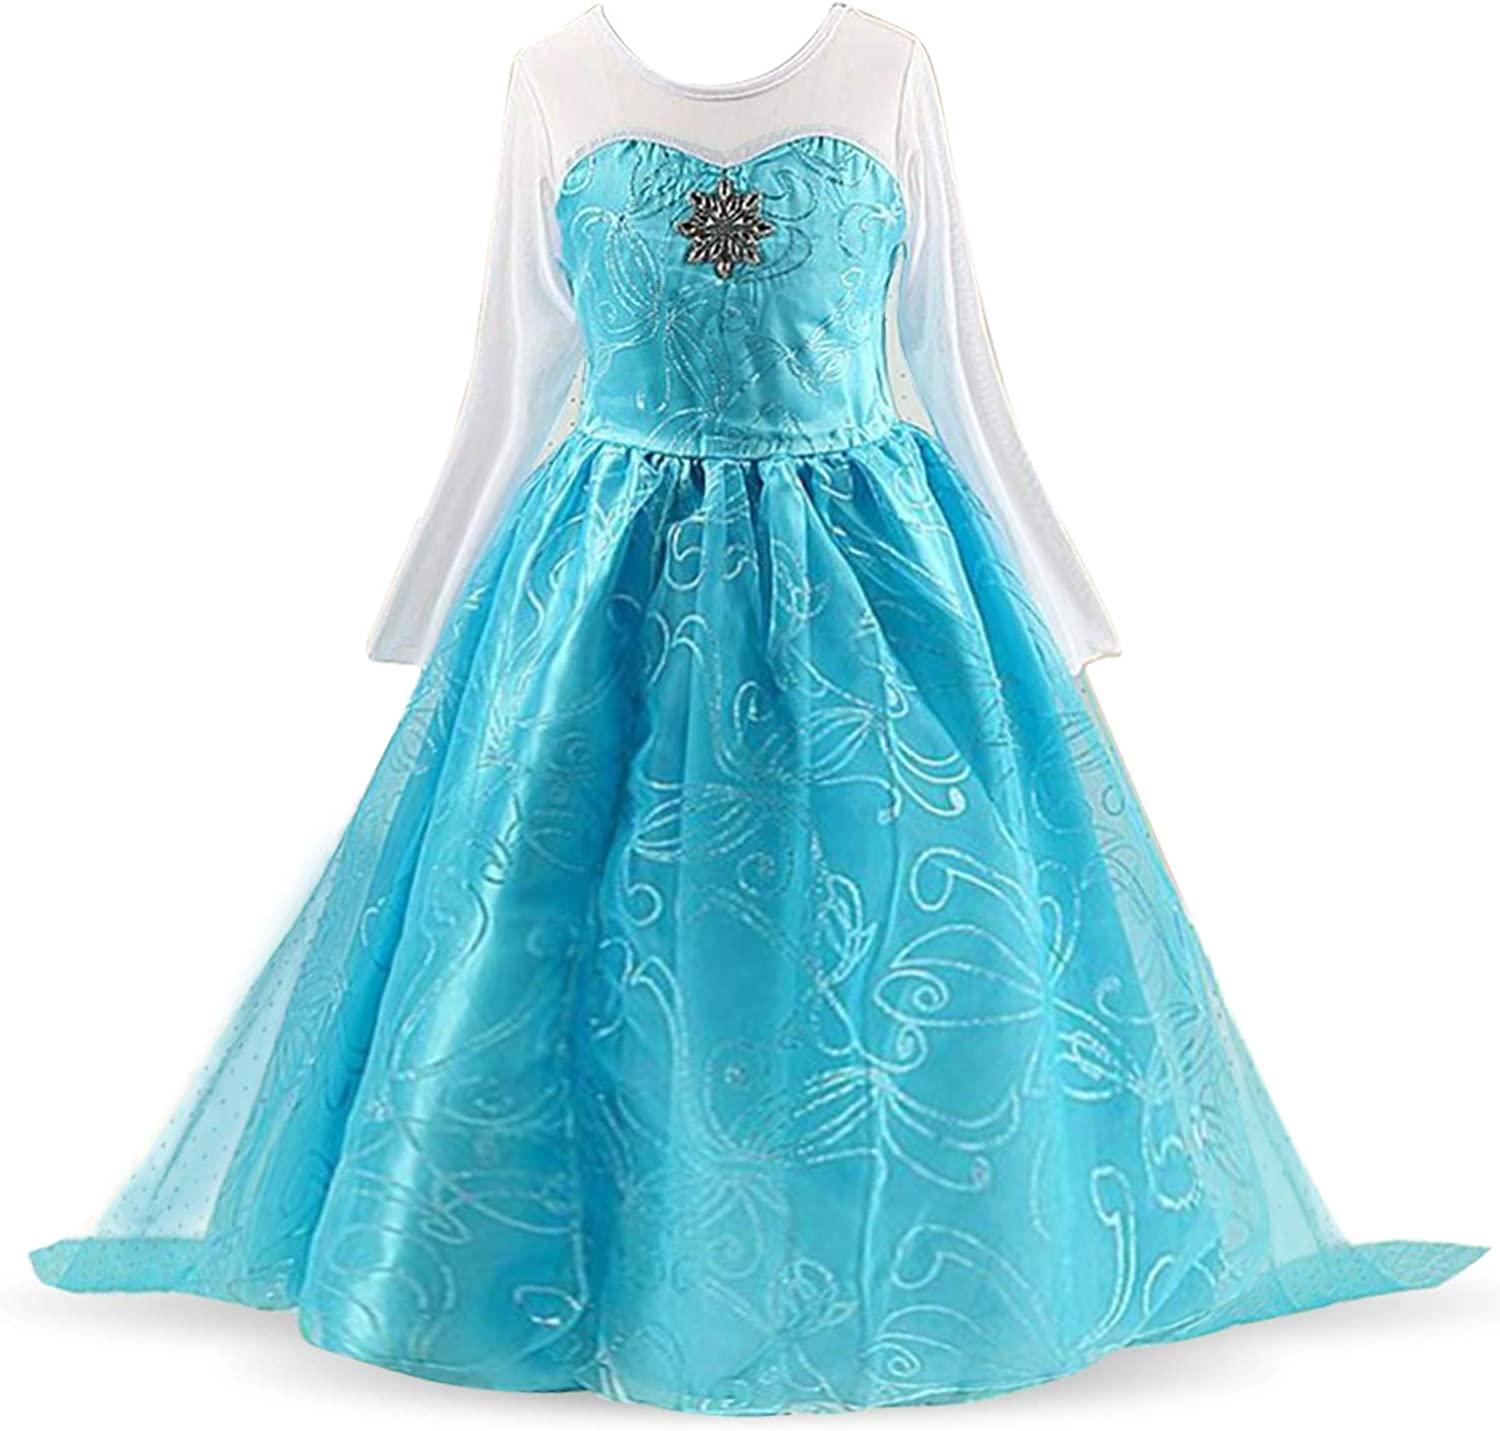 Nileafes Girls Princess Fancy Costume Toddler Birthday Party Cosplay Dress